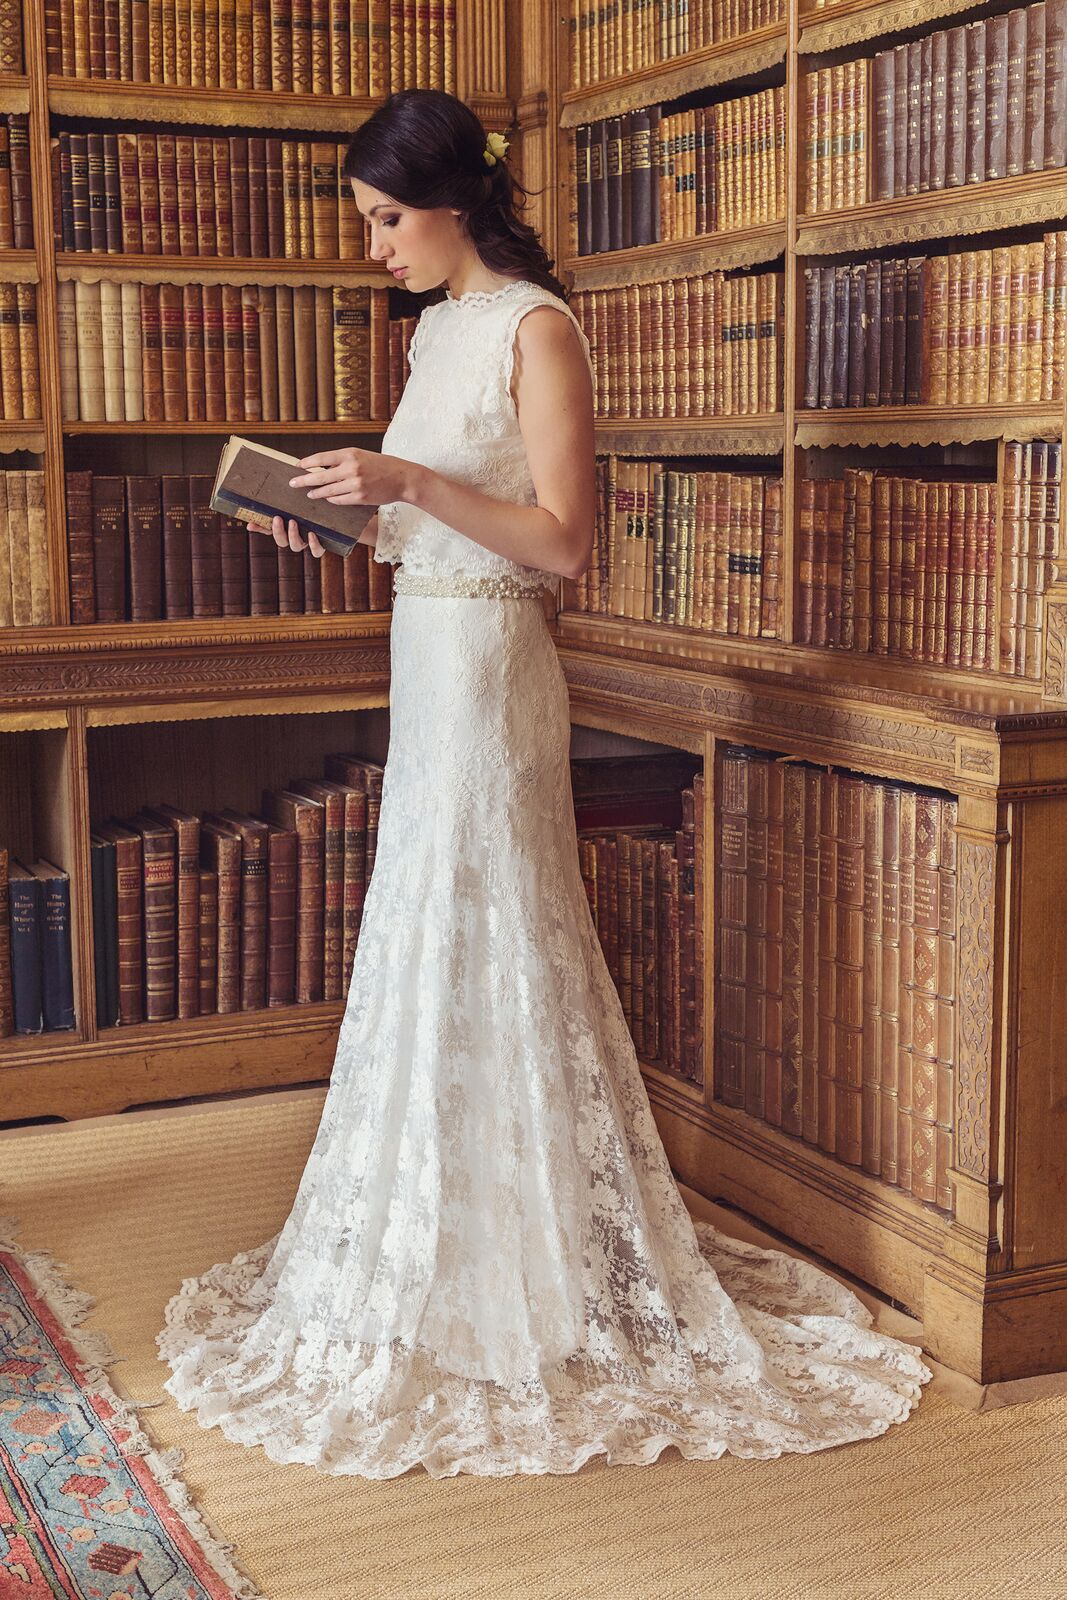 Holker bride in library.jpg